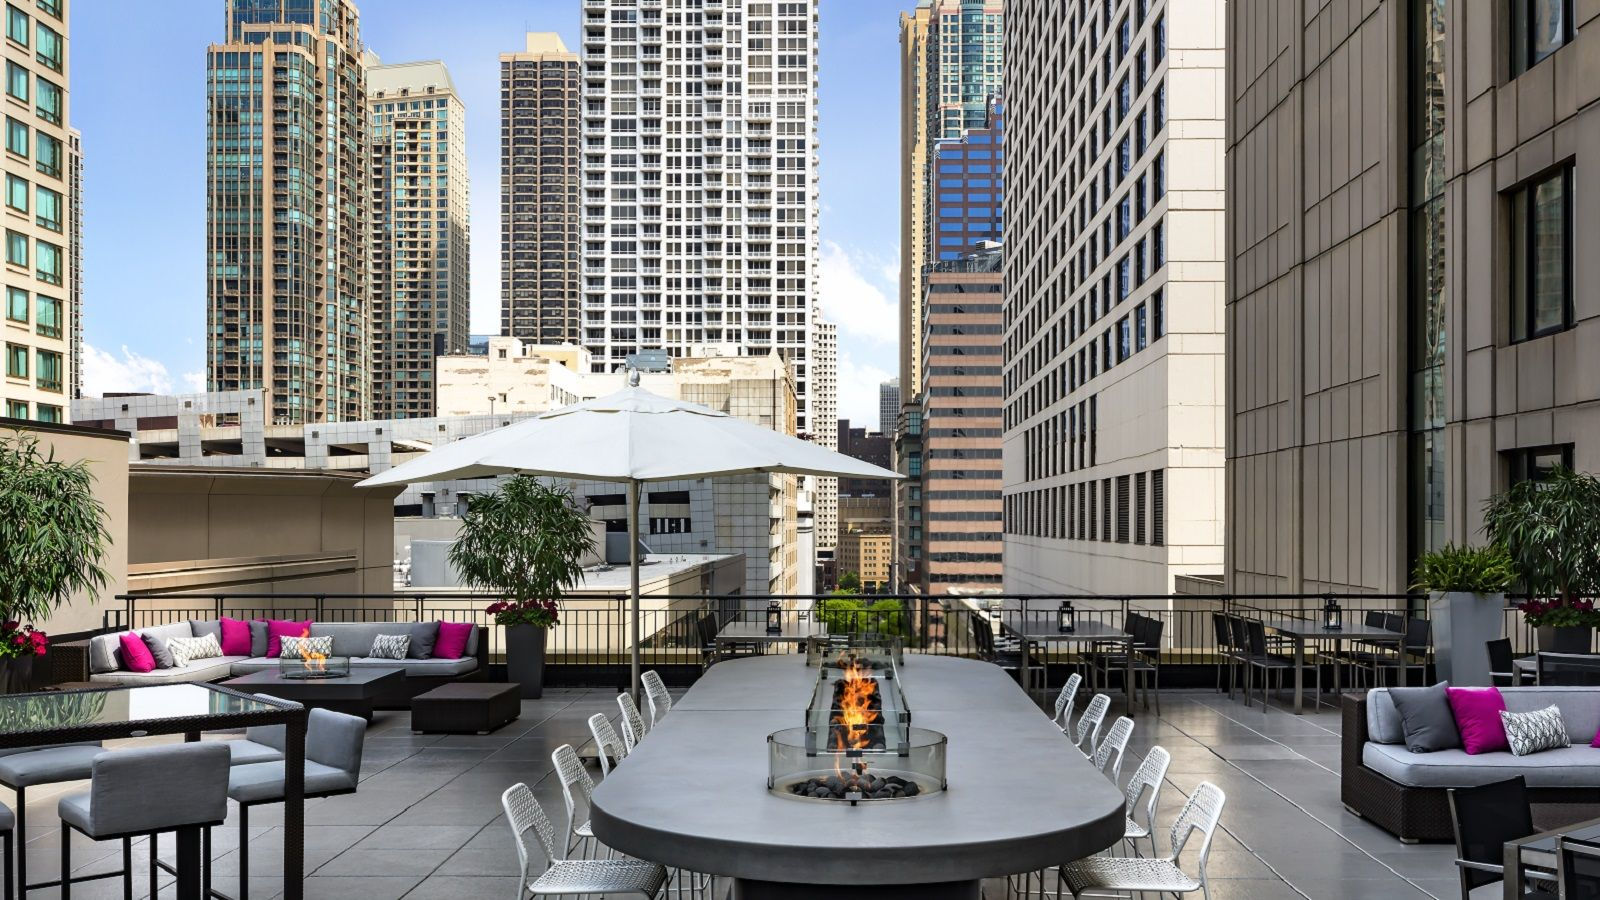 Chicago Hotel Features - DINING